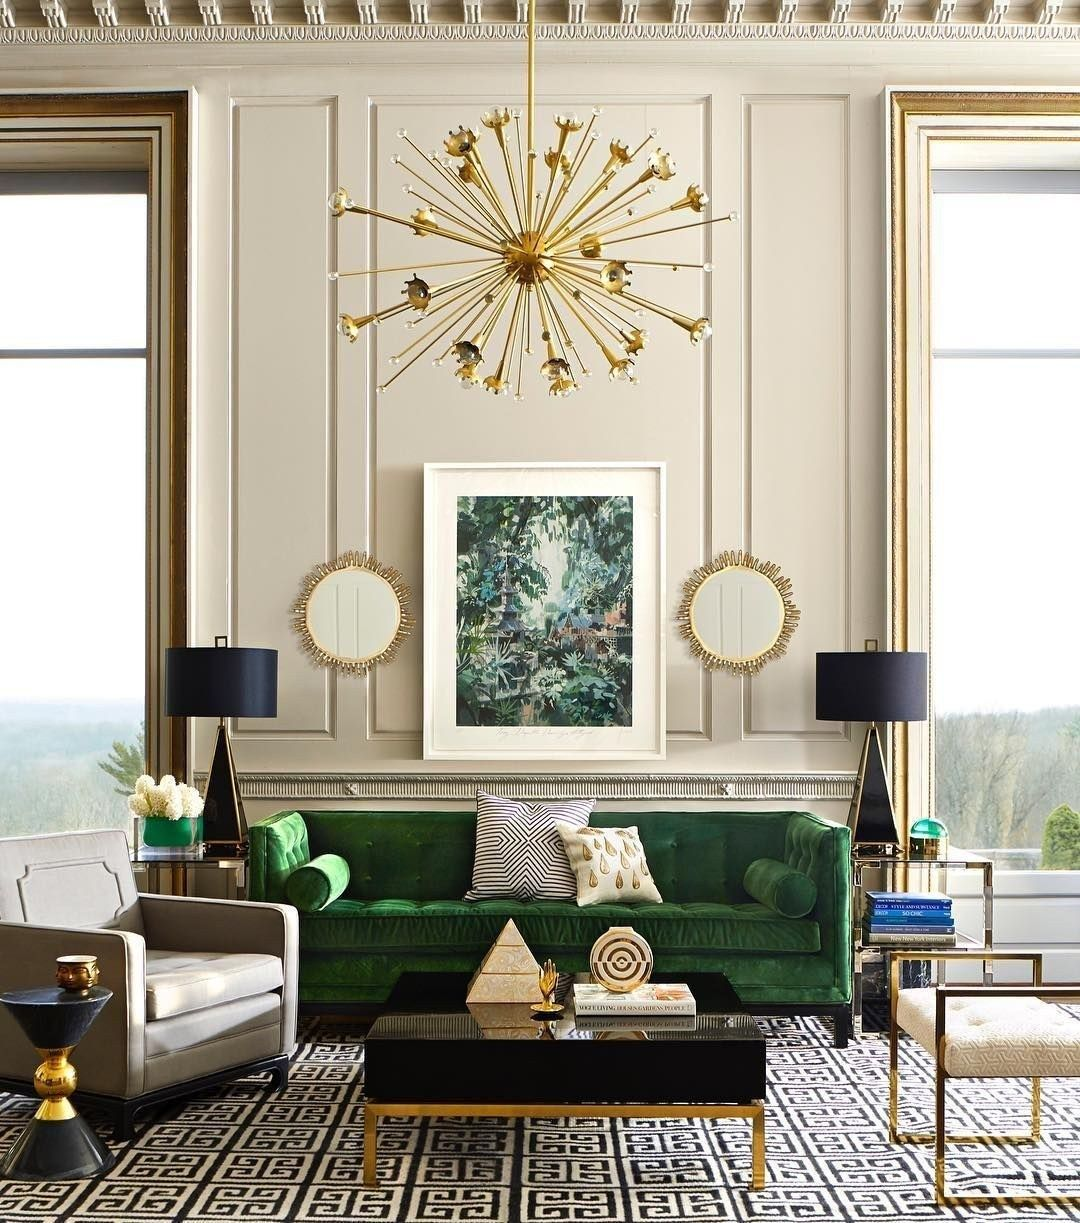 38 Green Velvet Sofa Design Ideas To Makeover Your Living Room Nellwyn News In 2020 Living Room Green